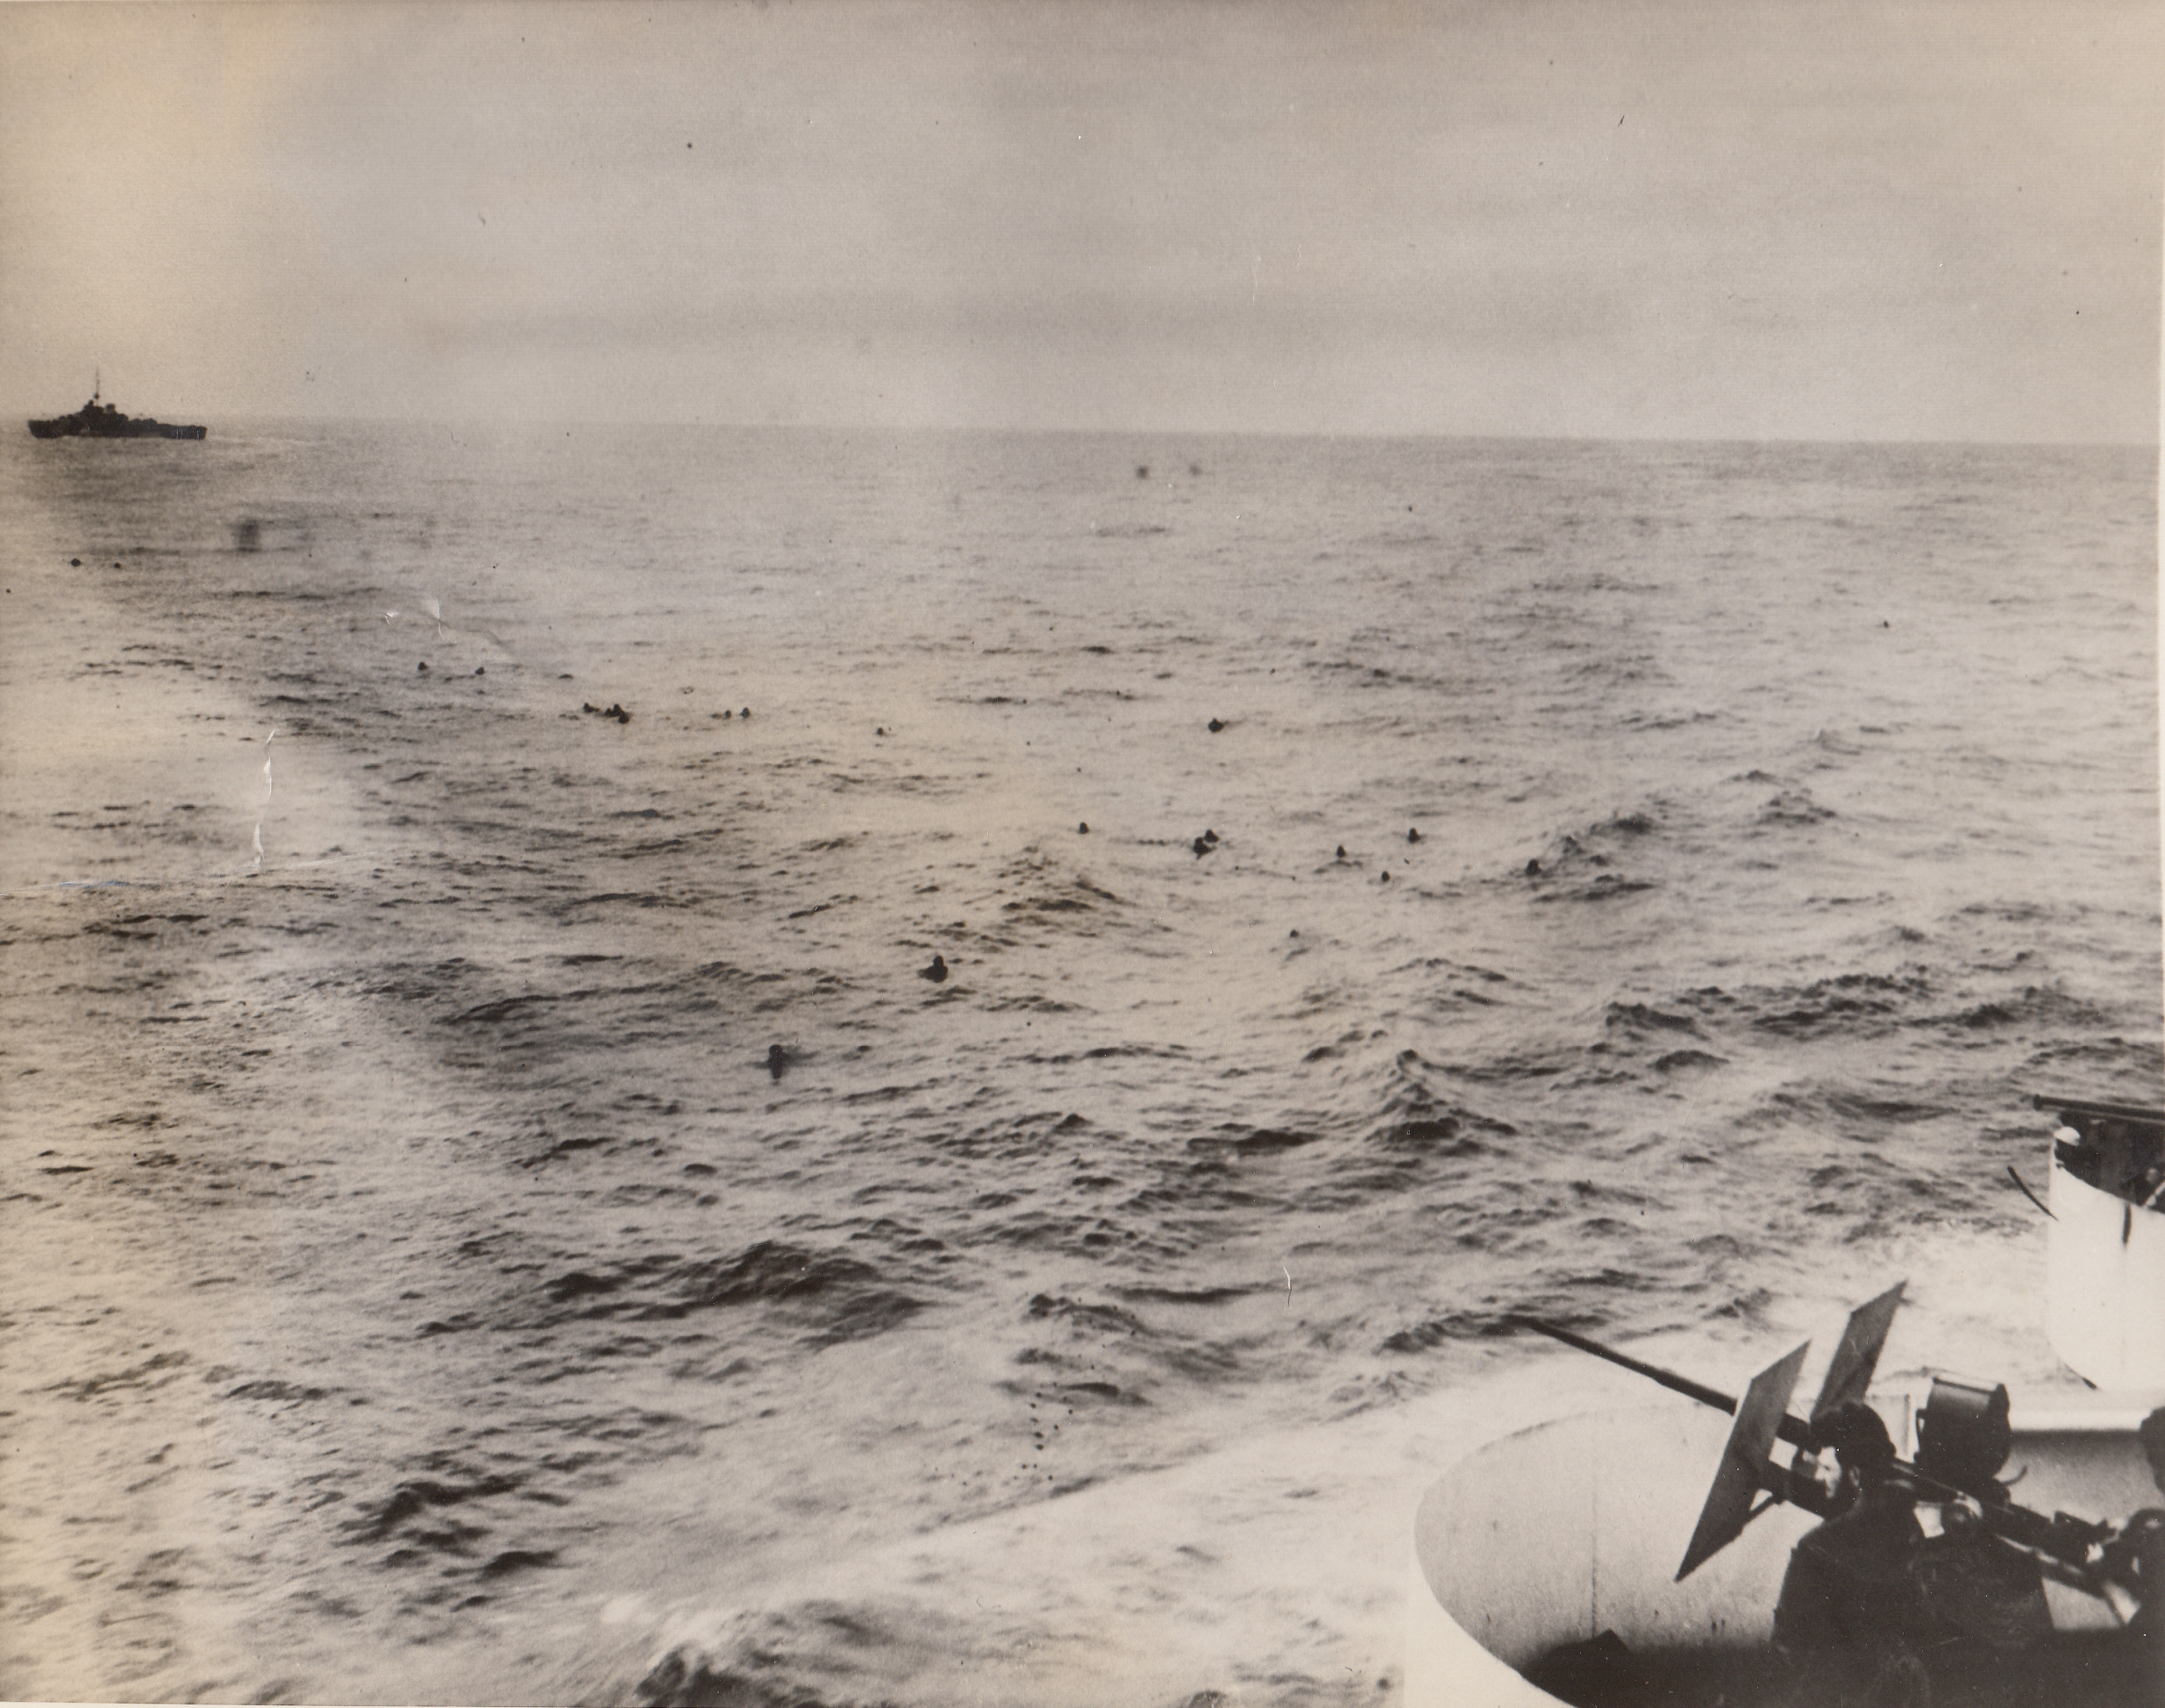 """Subless Supermen, 5/31/1943. North Atlantic – """"Oh where, oh where has that submarine gone"""" is the song of these Nazis as they paddle for their lives toward the U.S. Coast Guard cutter Spencer, which forced up and sank their undersea craft in a recent North Atlantic action. The U.S. Coast Guard Cutter Duane, which aided in the rescue, is shown in the background. The enemy sub was trying to sneak into the midst of a big convoy when the Spencer (right foreground) sent it to Davy Jones.;"""